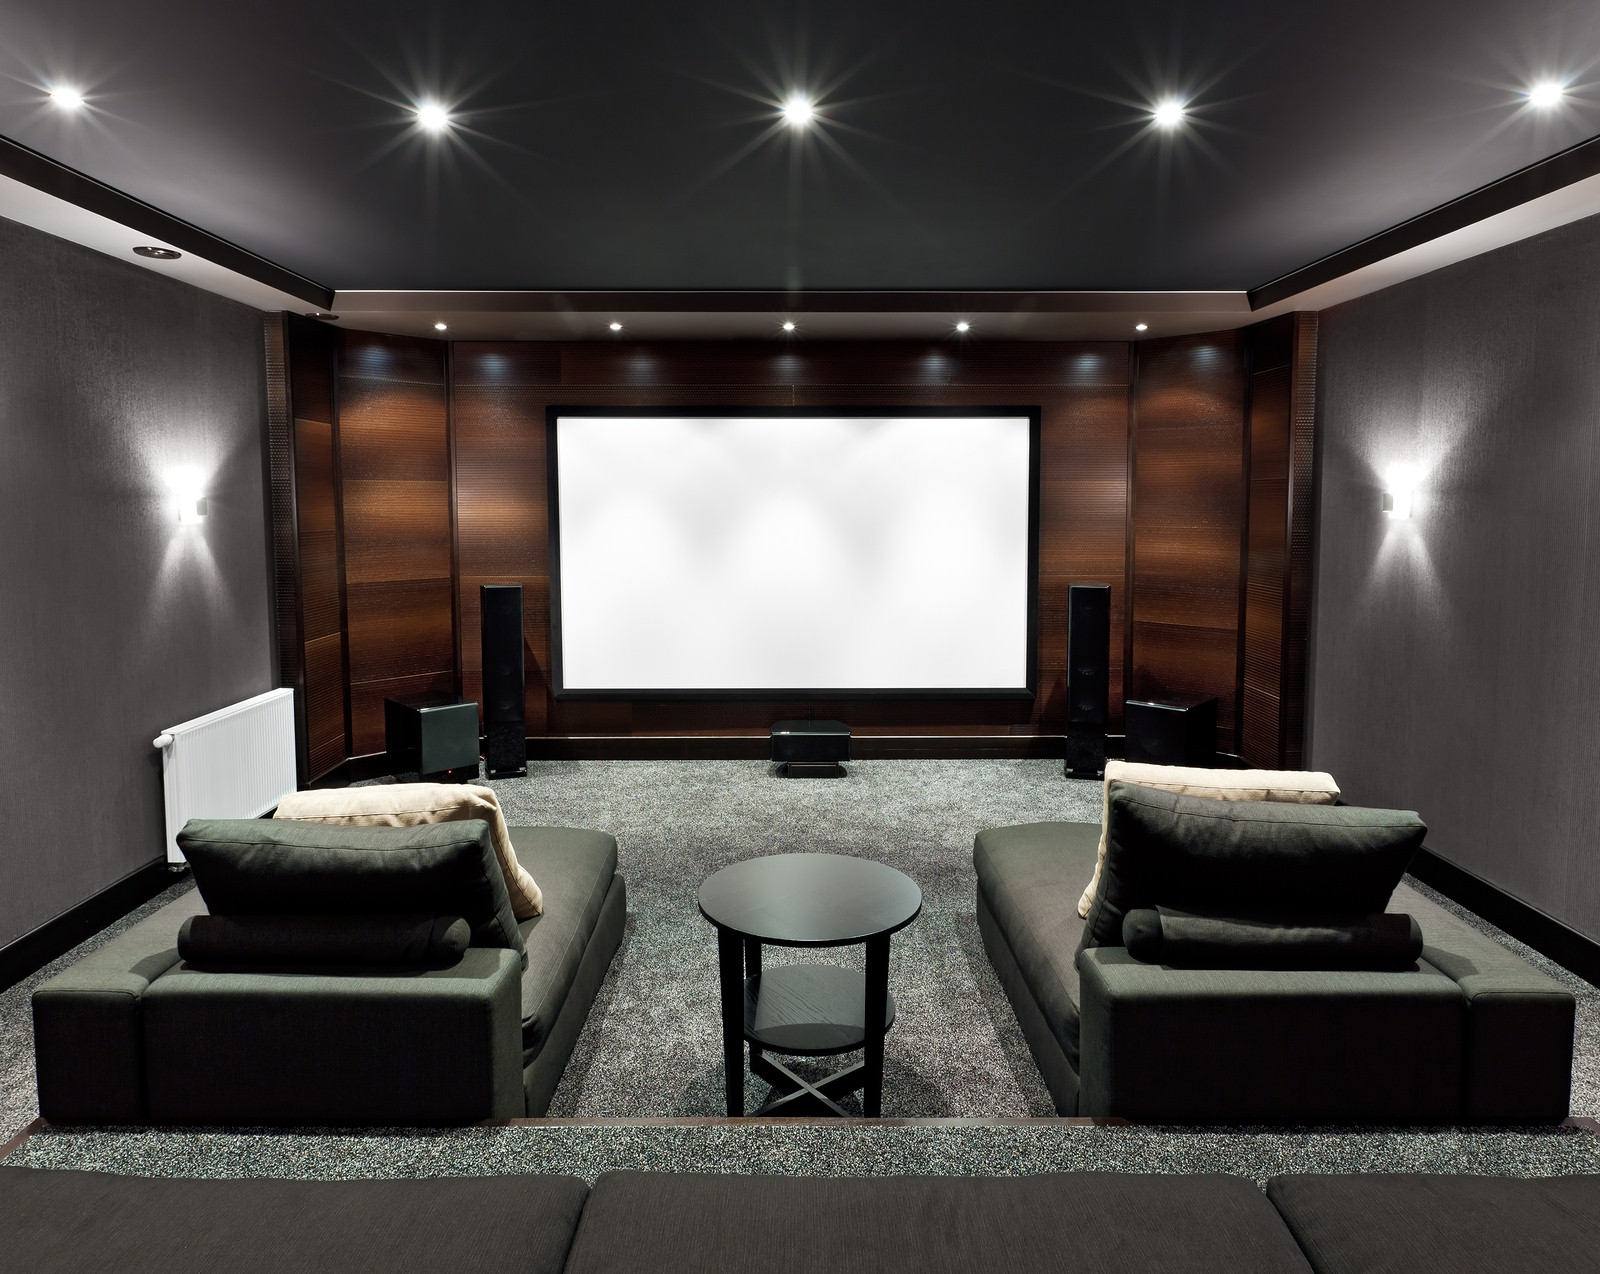 Top 3 gaming accessories for your entertainment room Home cinema interior design ideas